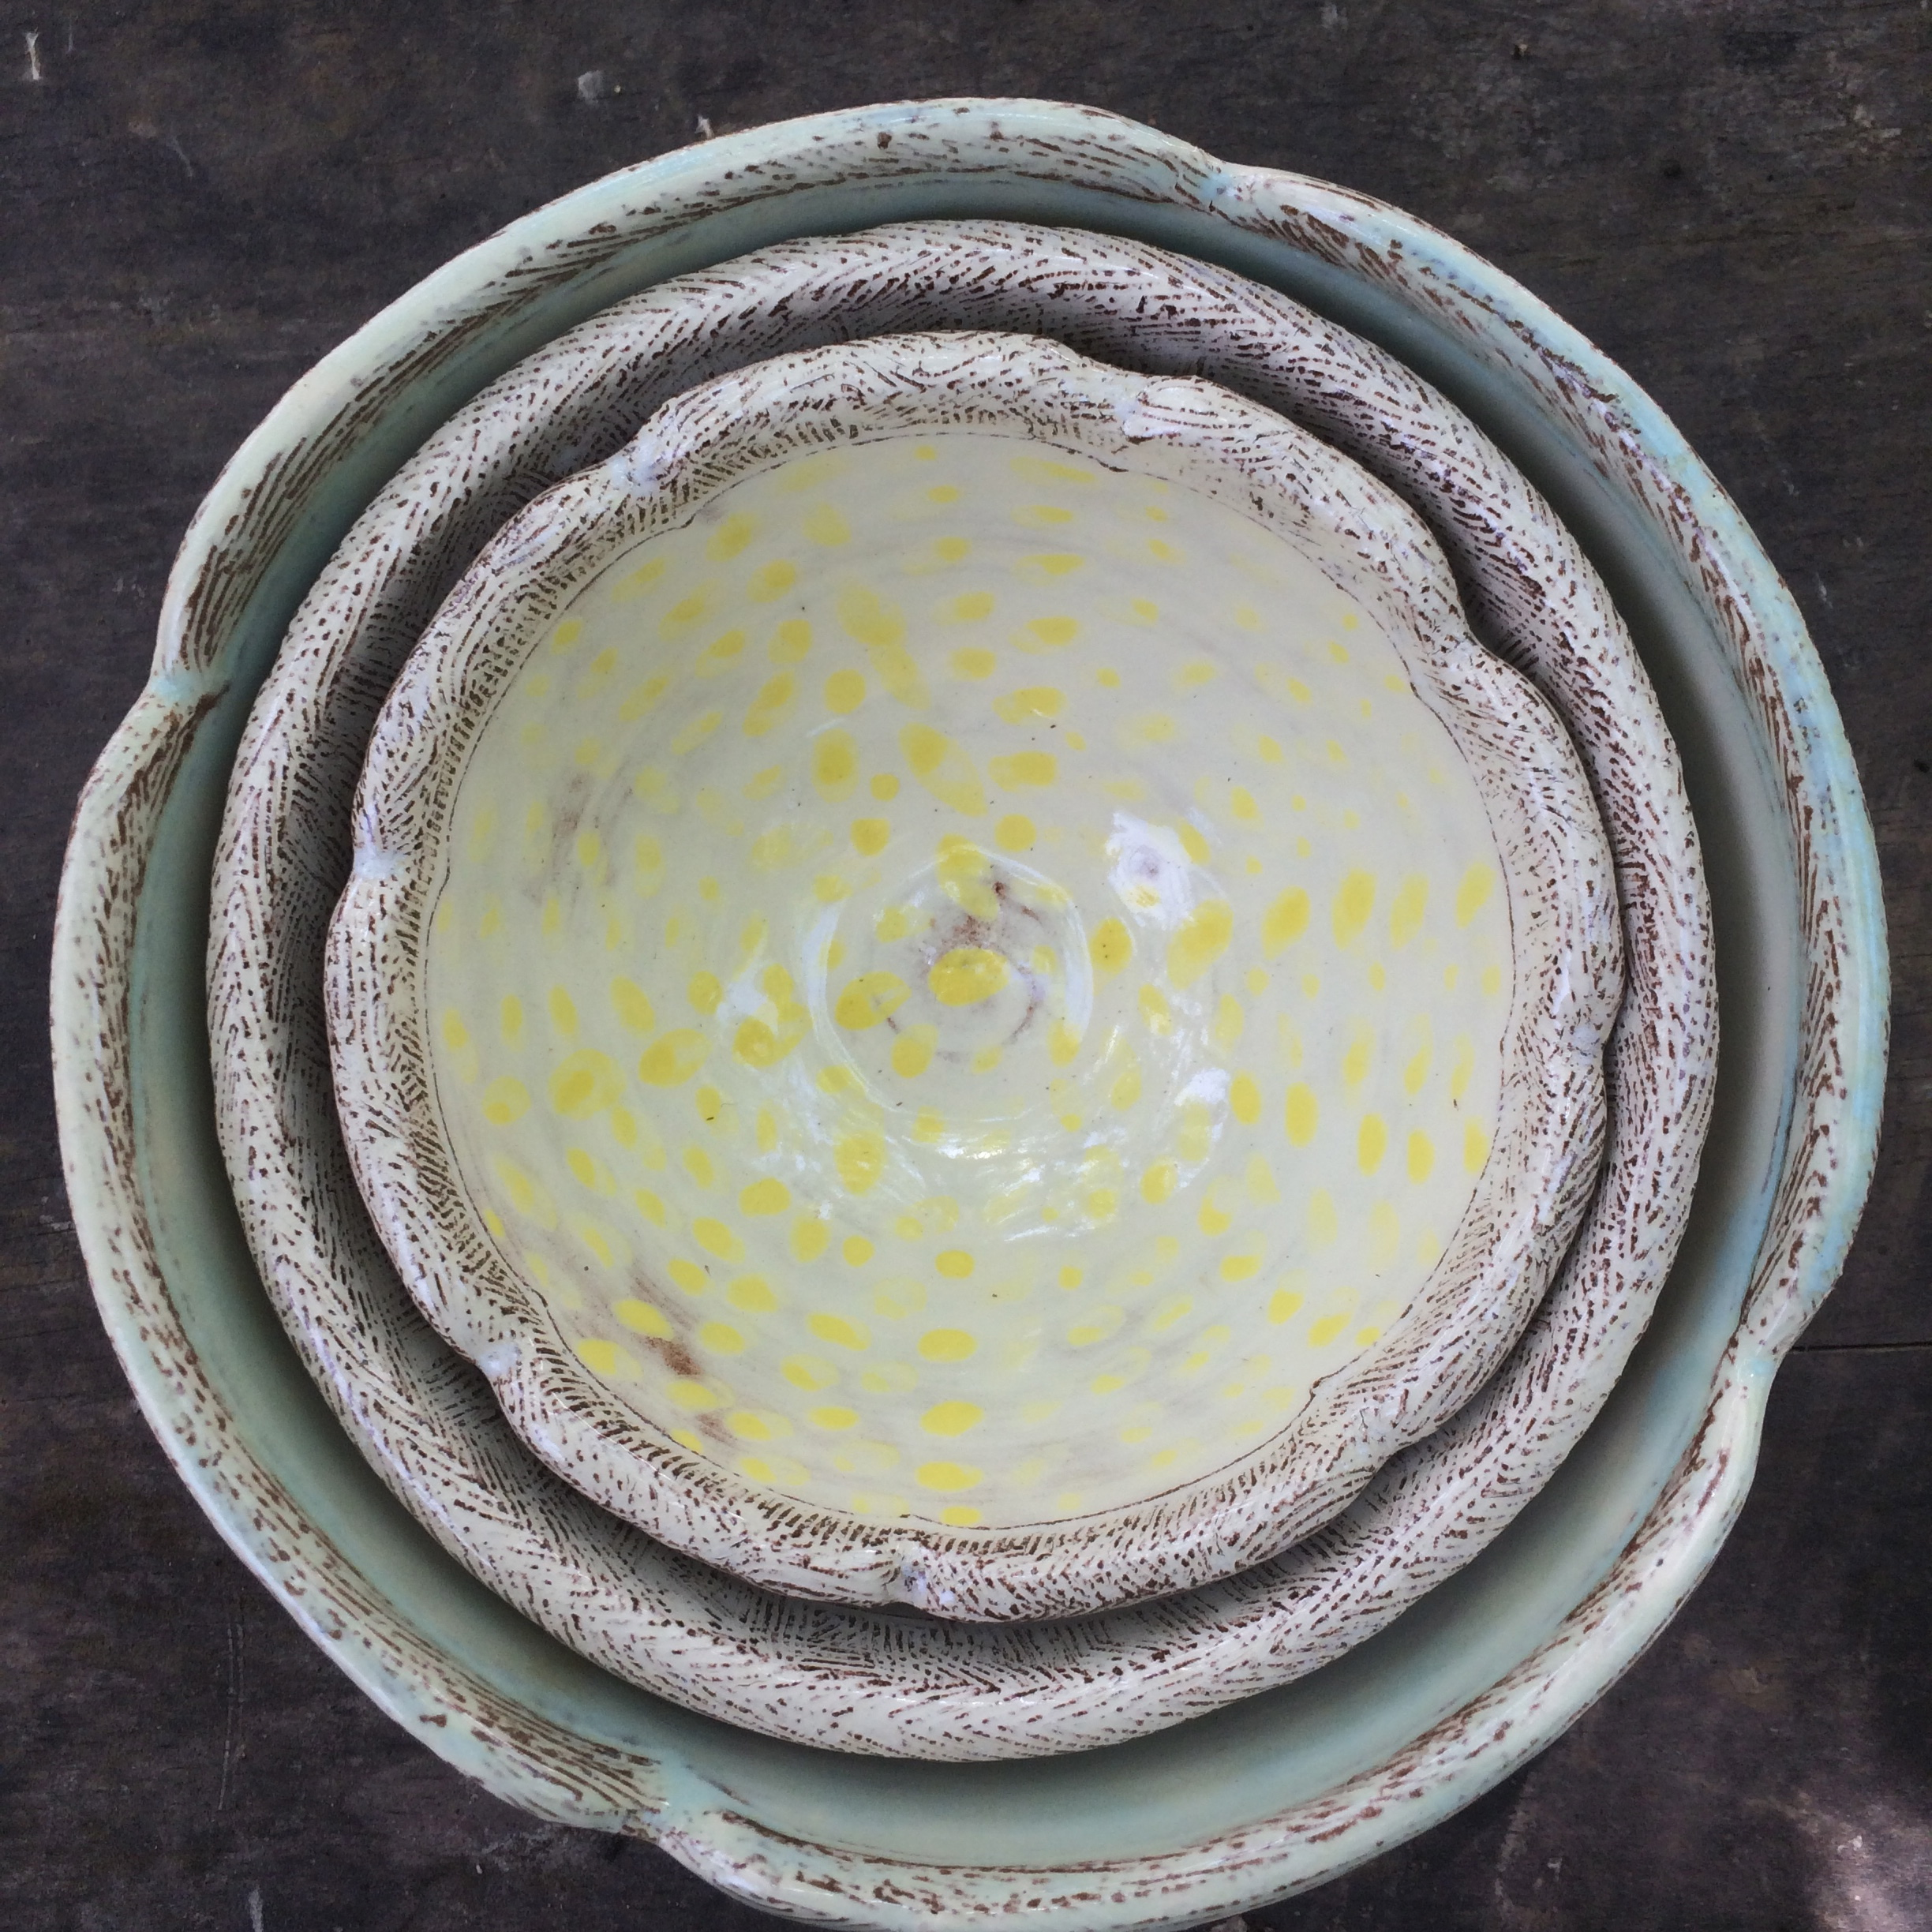 New Bowl Sizes, and one more coming soon. Tiny, Small, Medium and soon Large. A bowl for every occasion.